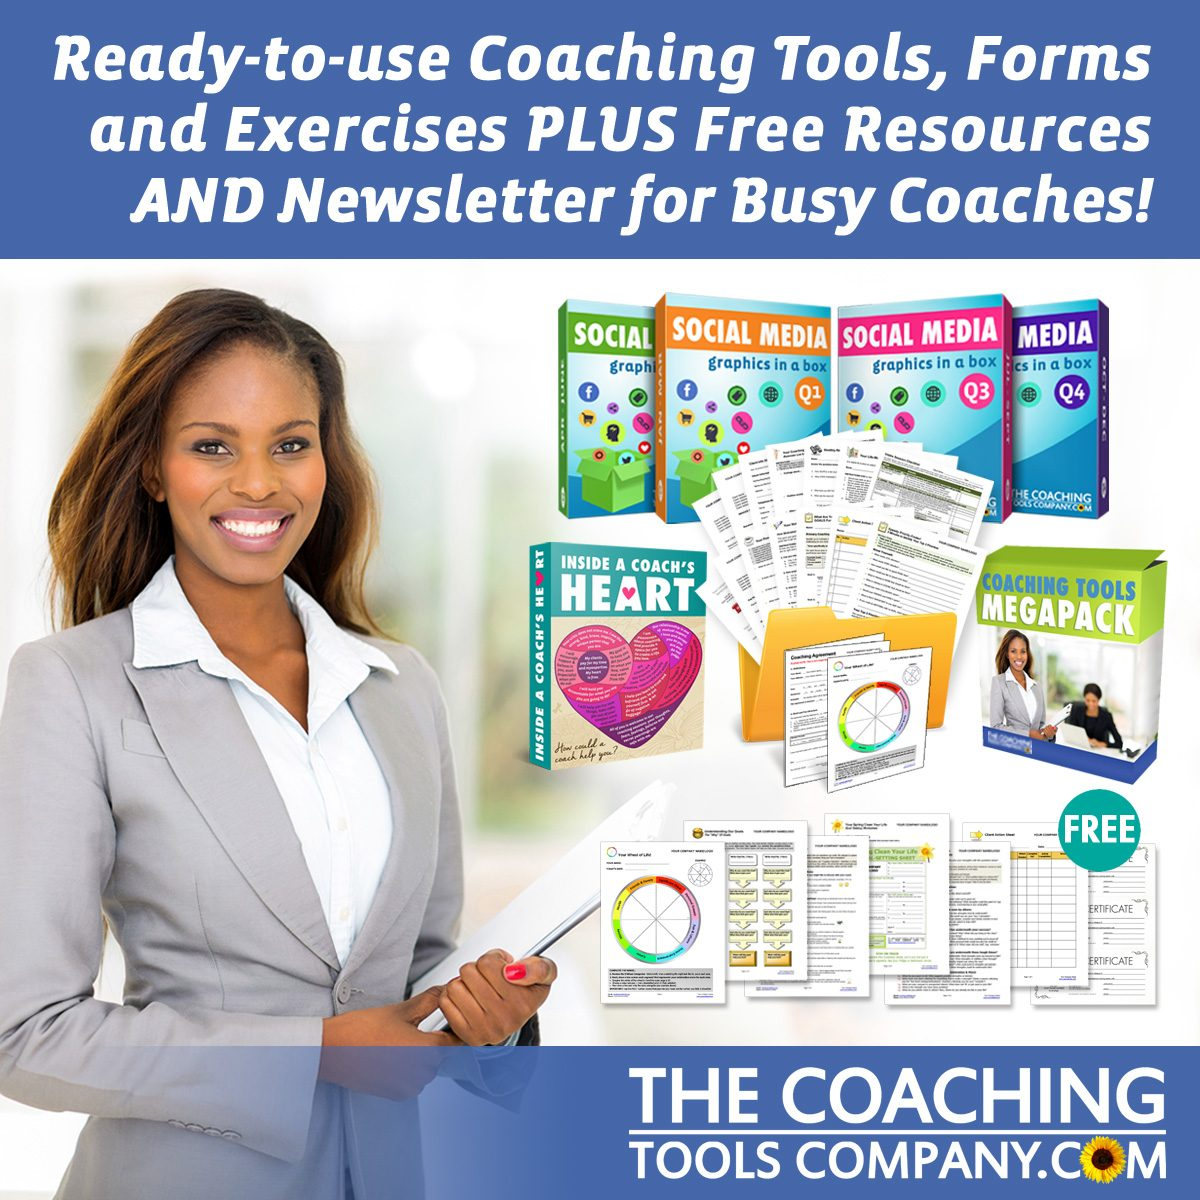 Blog for Coaches: Coaching Skills, Tips & More from The Coaching Tools Company.com